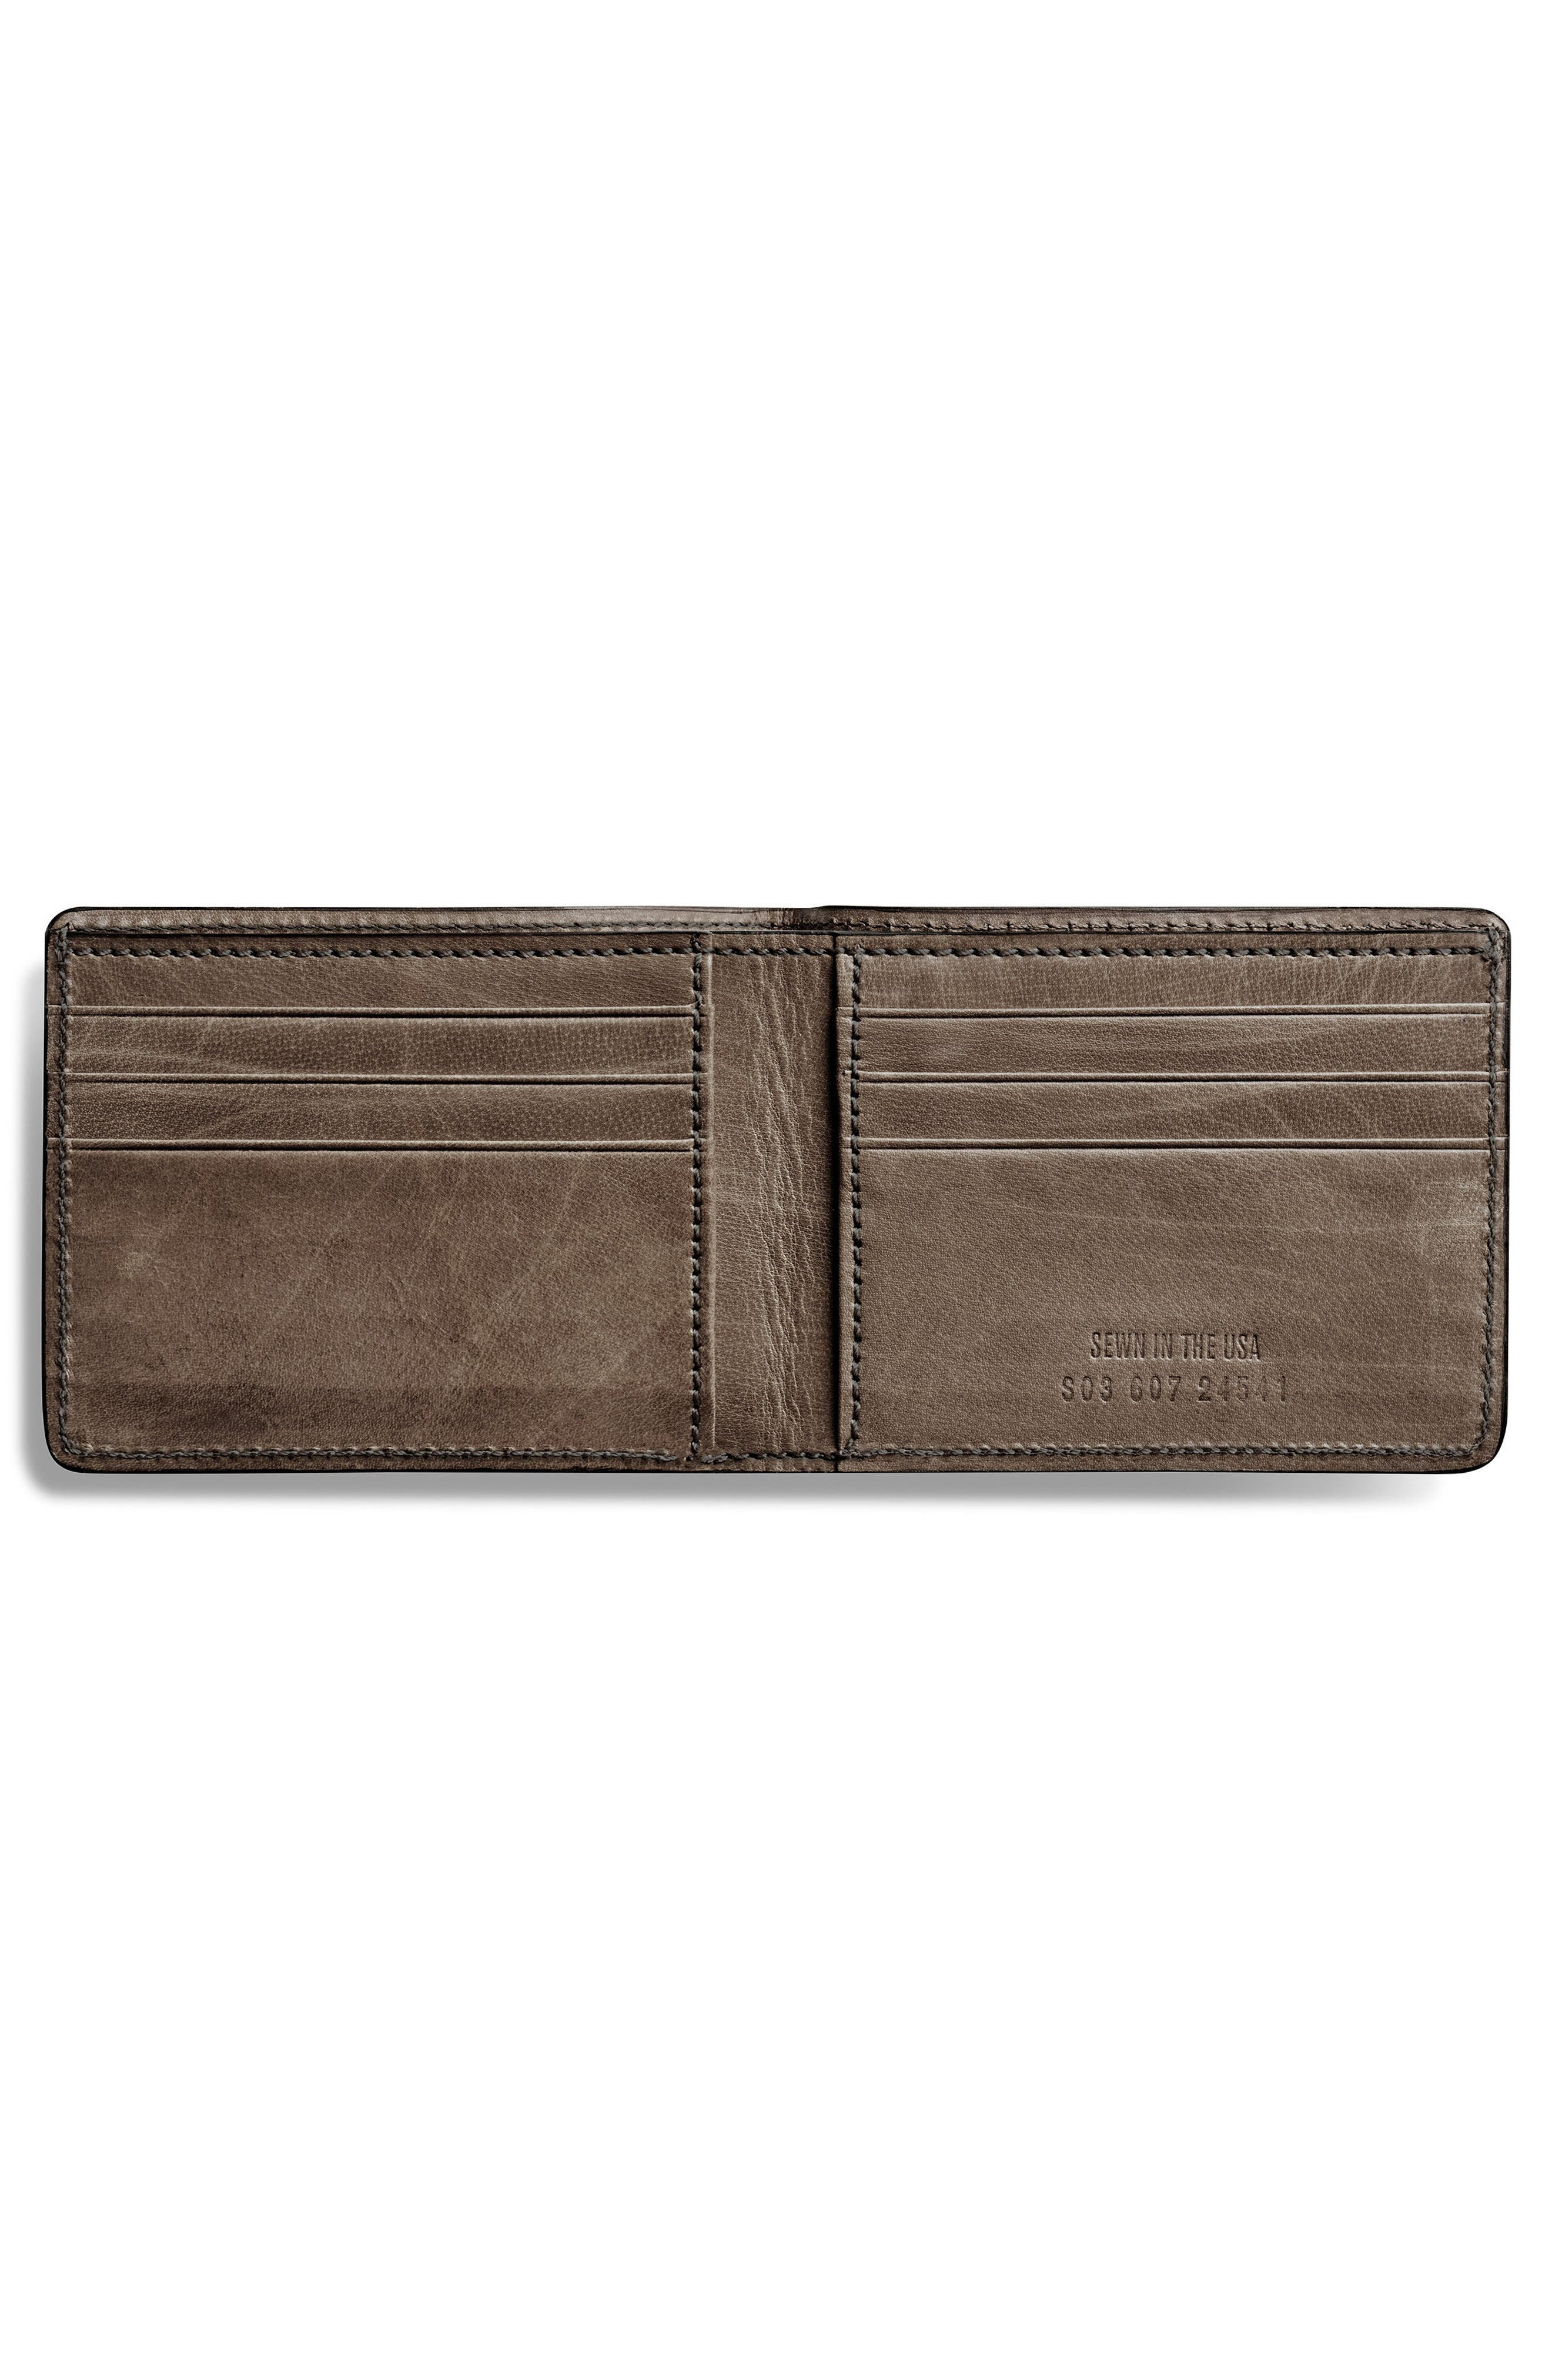 Outlaw Wallet,                             Alternate thumbnail 2, color,                             DARK GREY